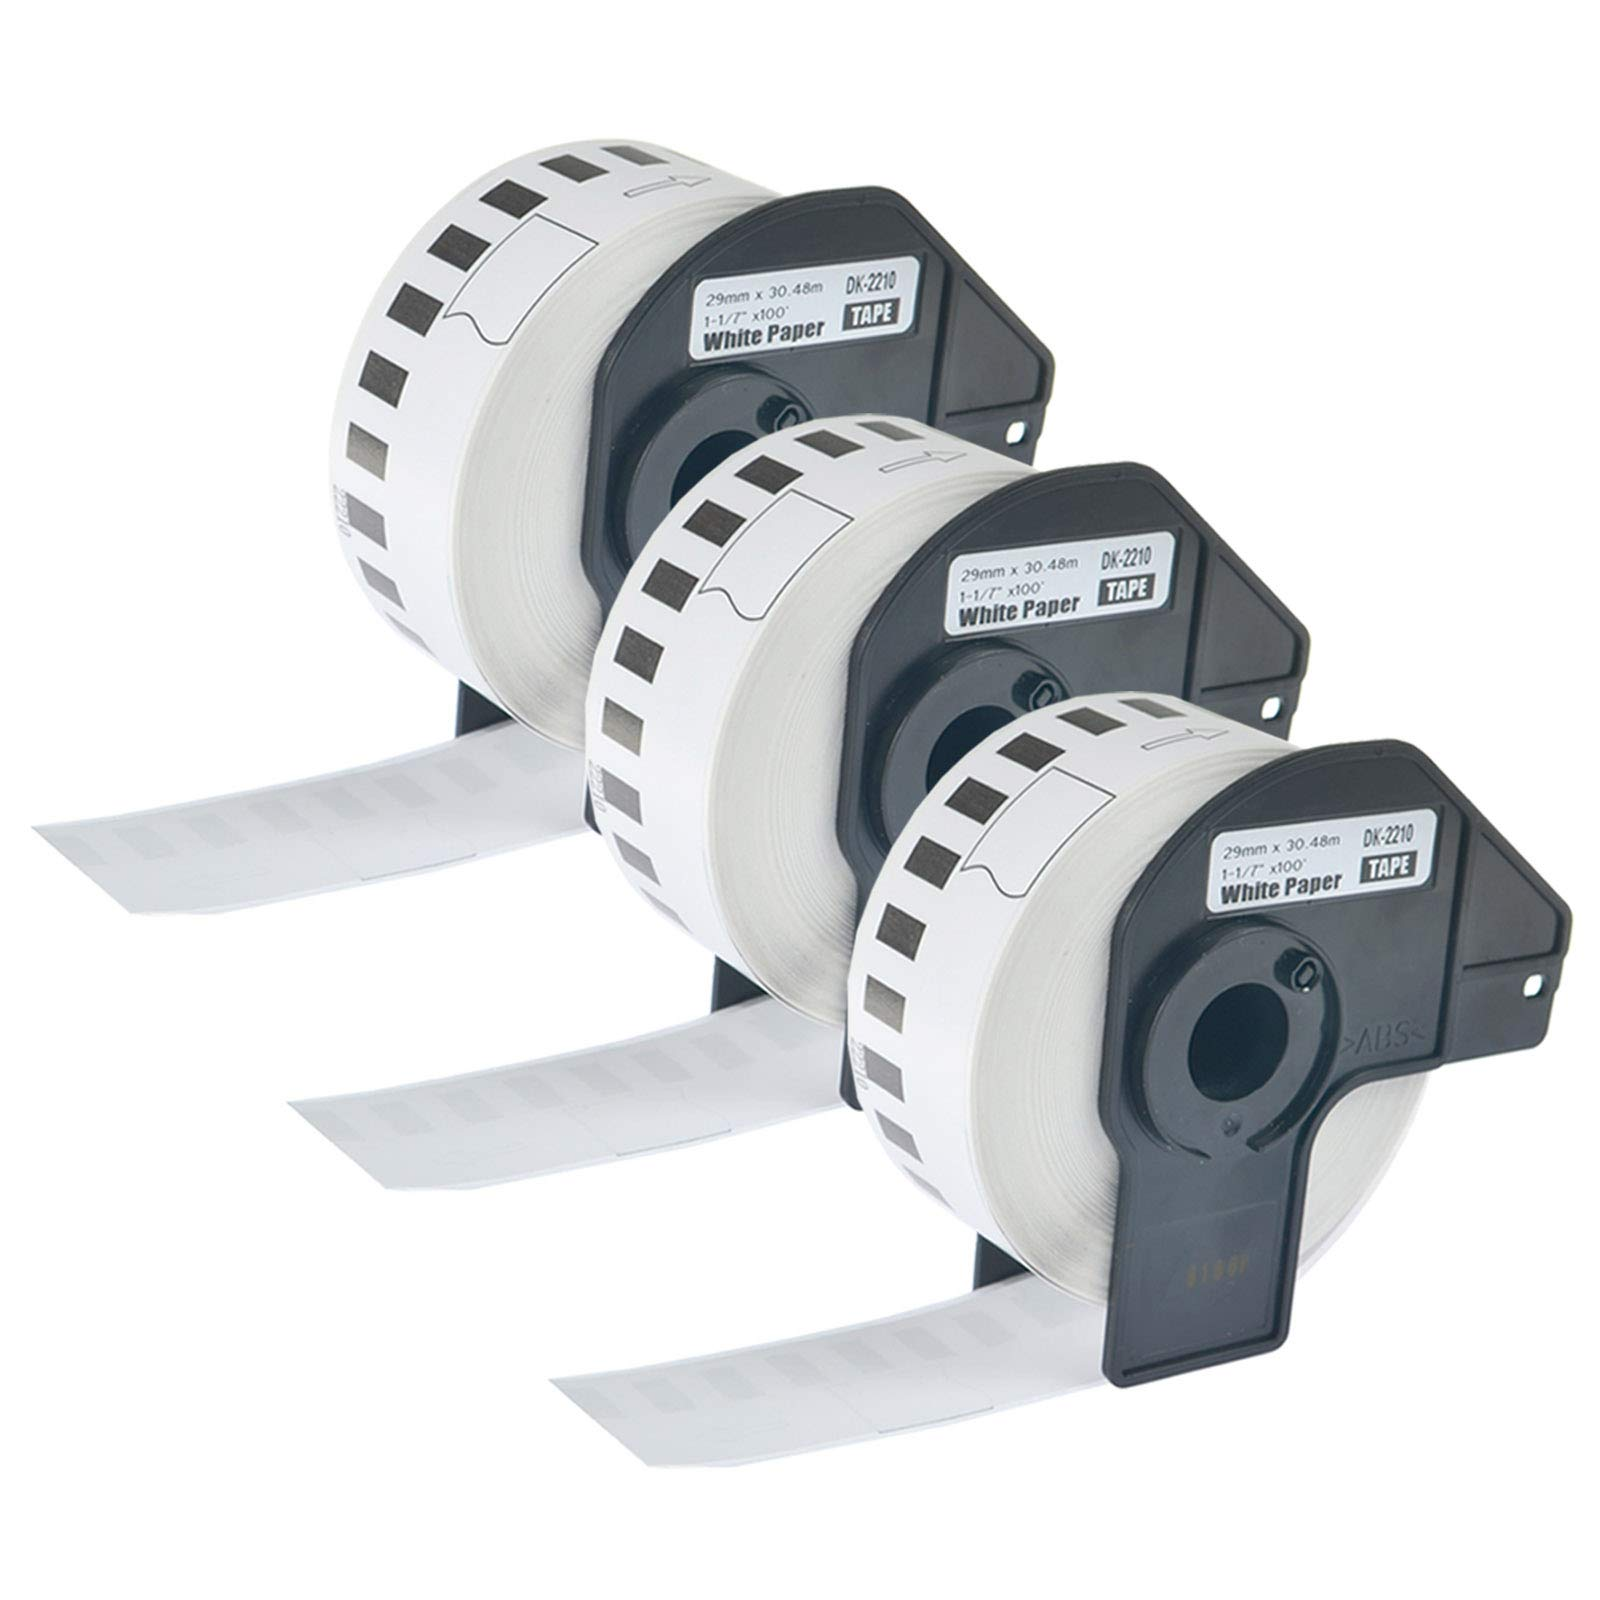 KCYMTONER 3 Rolls Compatible for Brother DK-2210 White Continuous Length Paper Tape Labels,1-1/7 Inches (29mm) by 100ft (30.48m), use in P-Touch QL-500 QL-650TD QL-1050 QL-1060N Series Label Maker